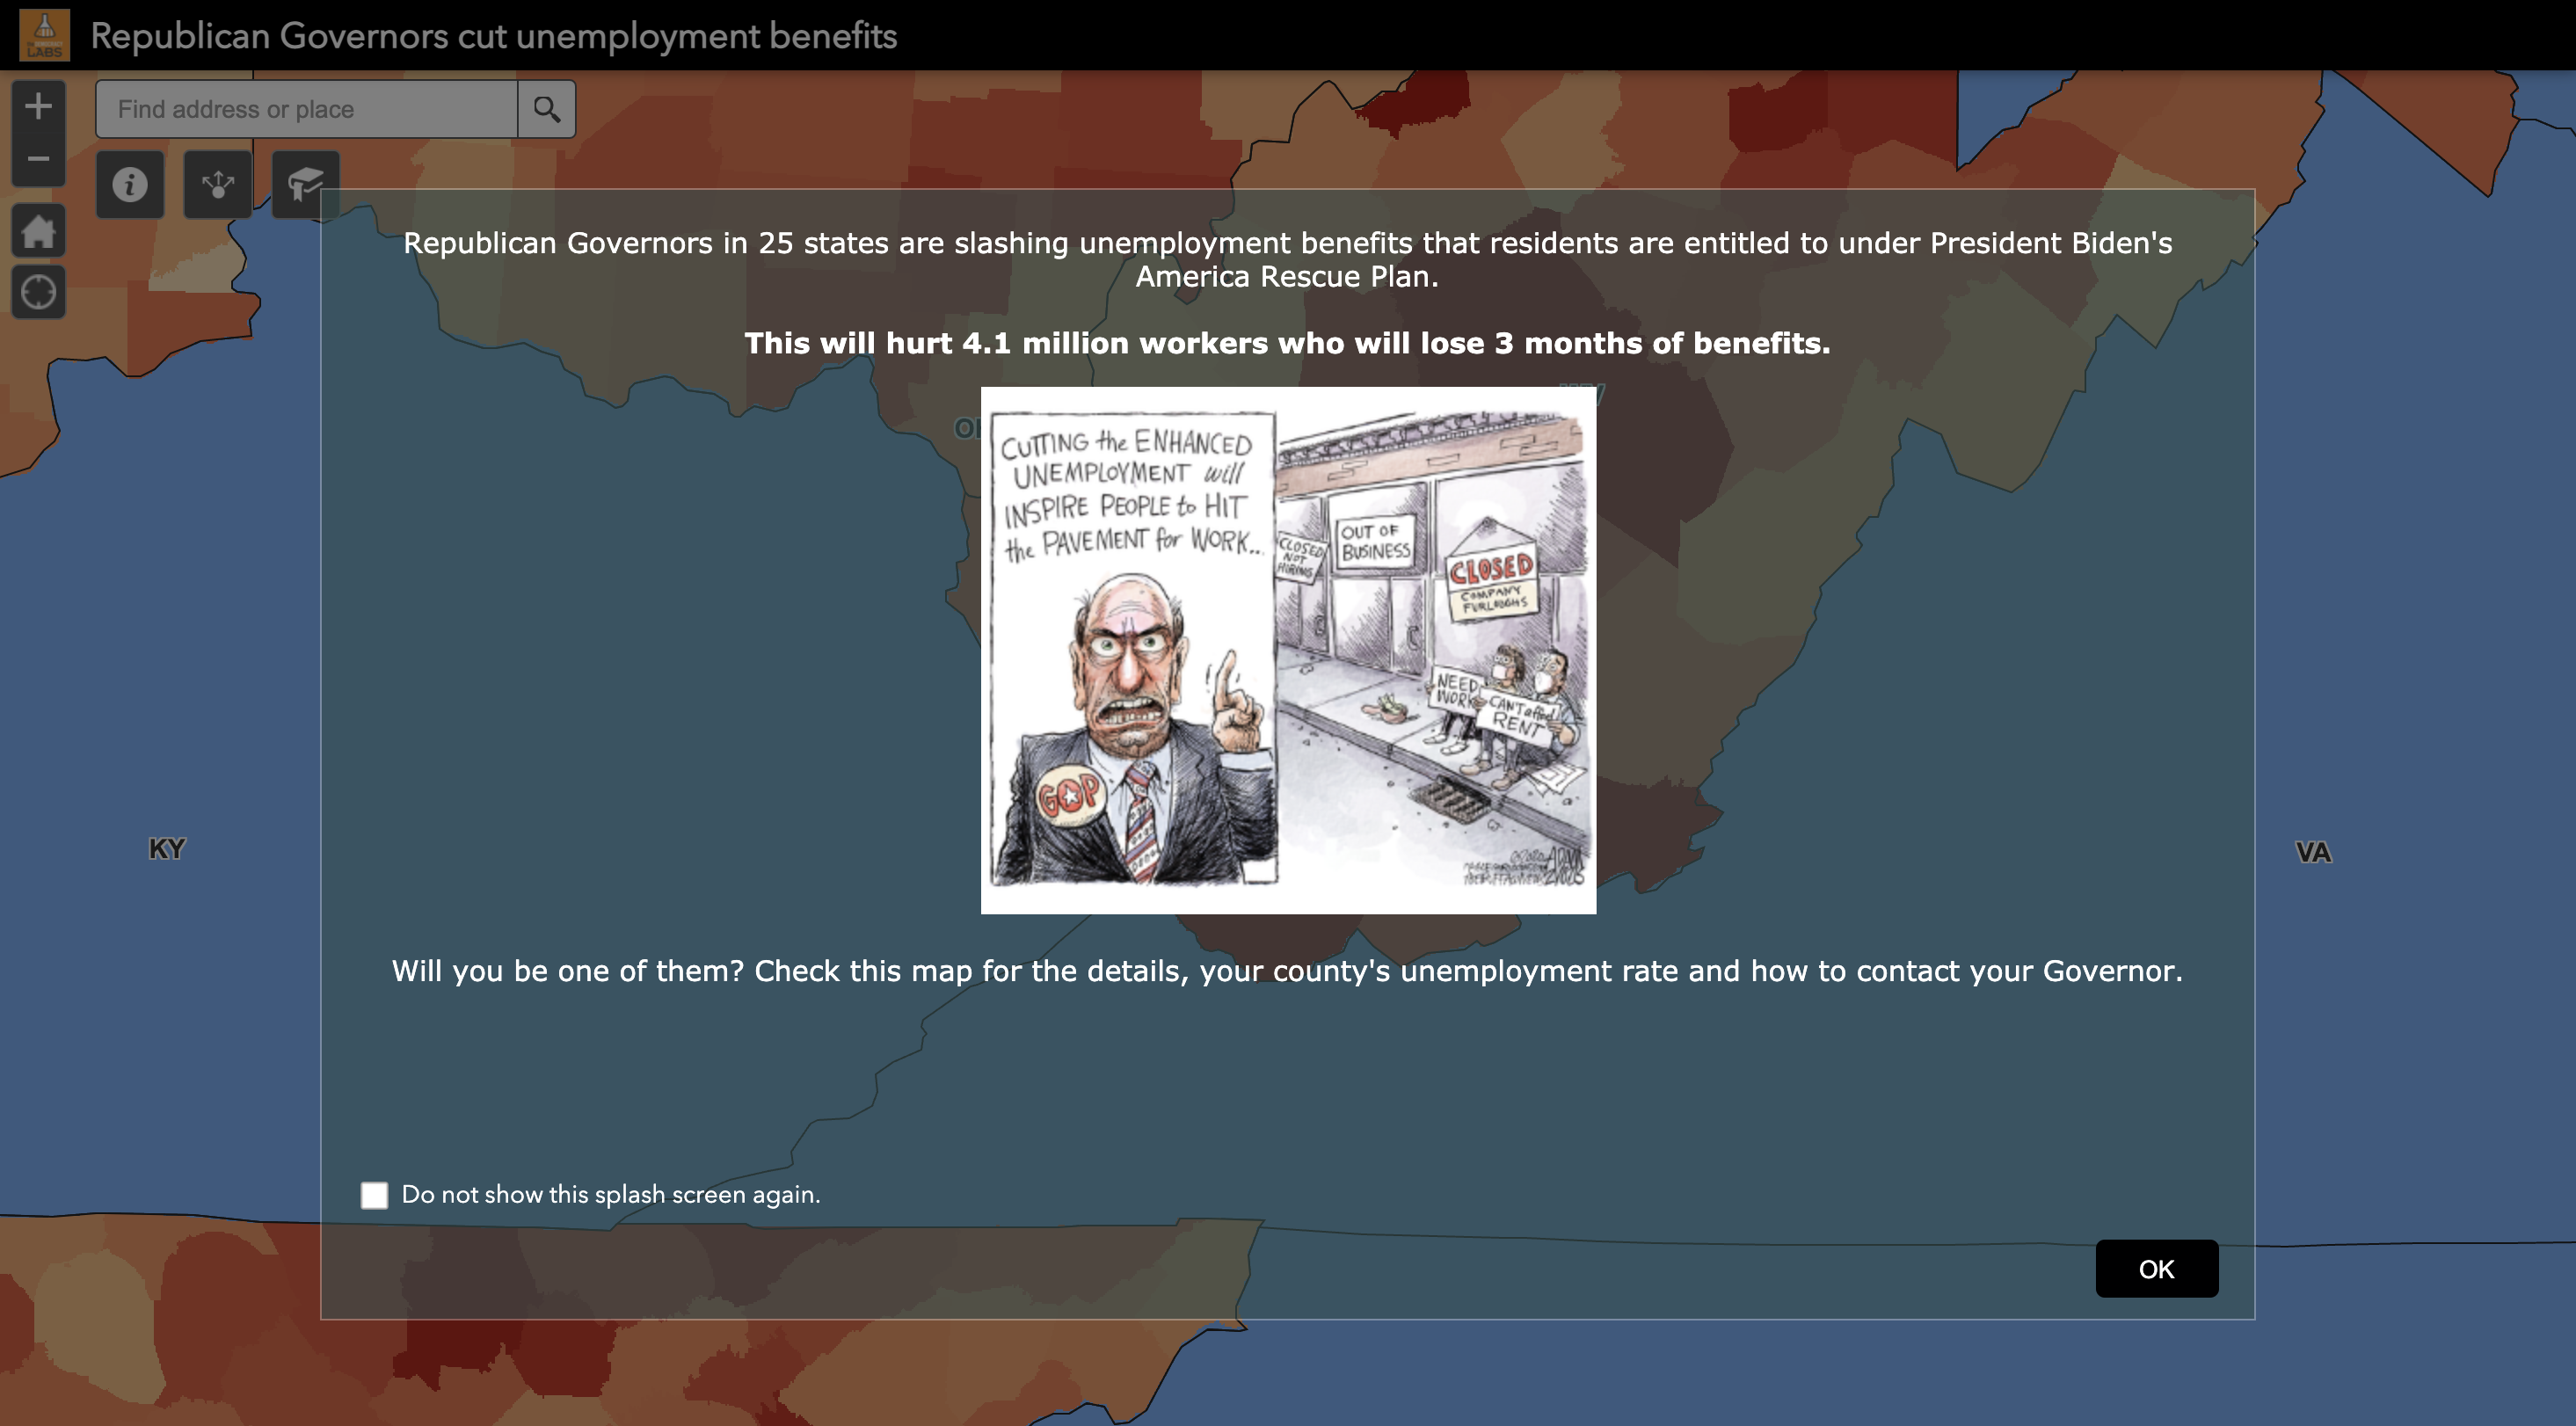 Splash Screen frames the issue before readers see the map